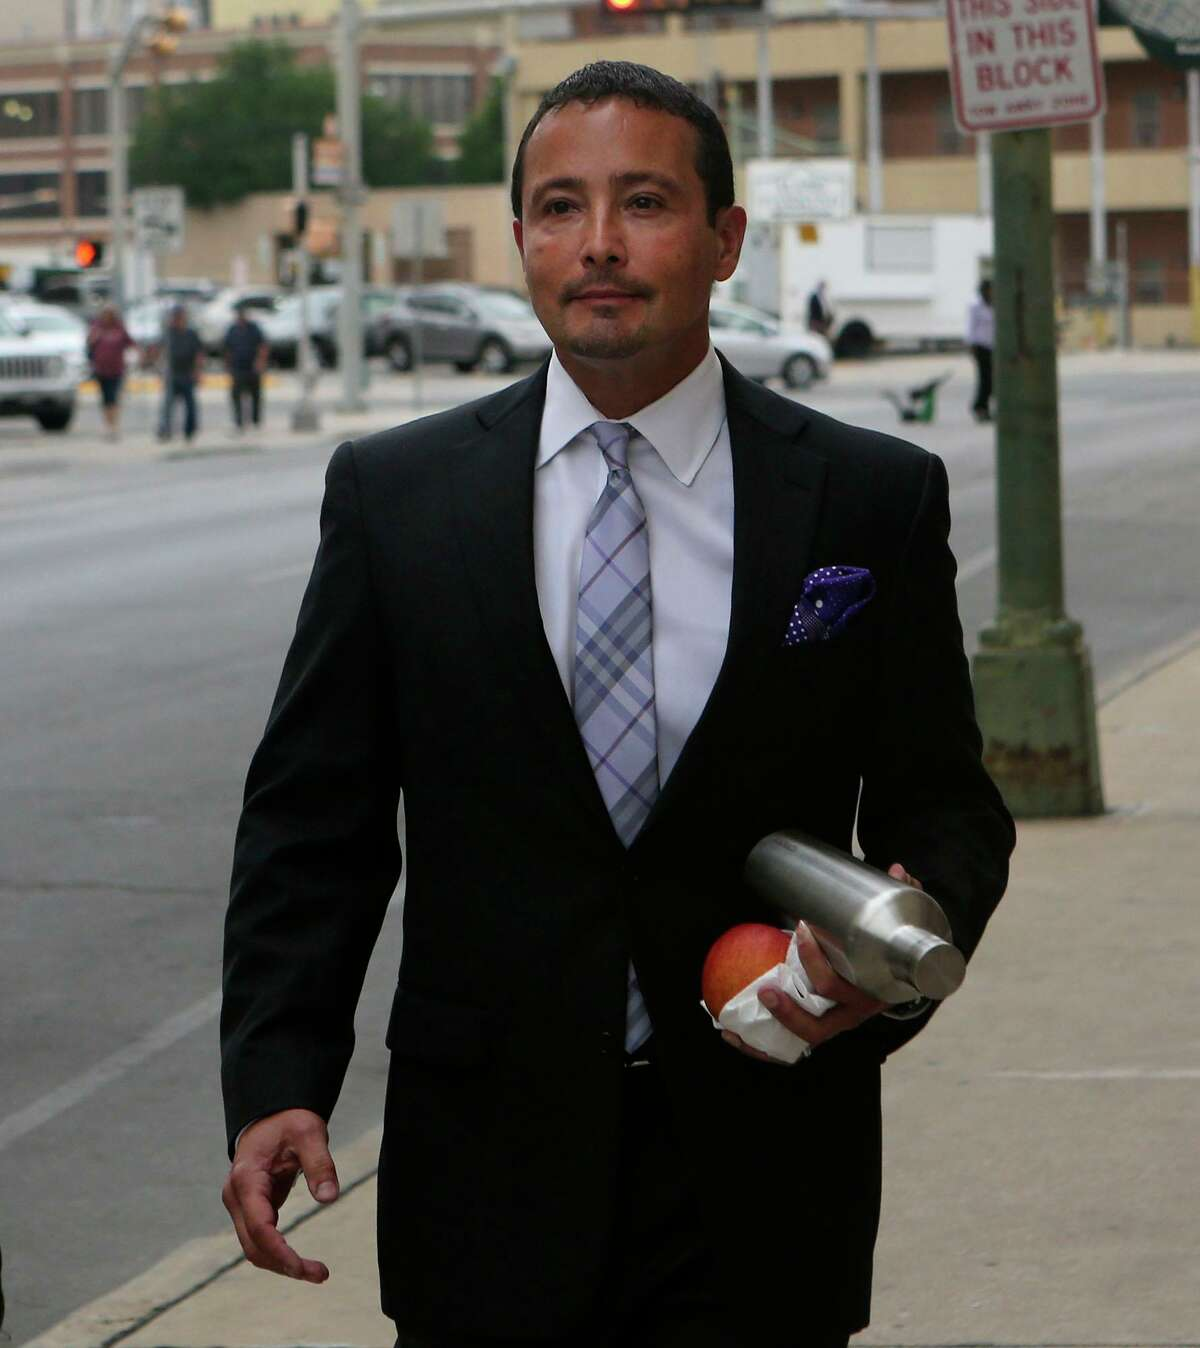 San Antonio oil and gas businessman Brian Alfaro lost his bid to overturn an a $8 million court judgment against him and his companies. Alfaro his pictured in April 2017 heading to U.S. Bankruptcy Court for a trial on a lawsuit brought by investors who alleged Alfaro defrauded them.